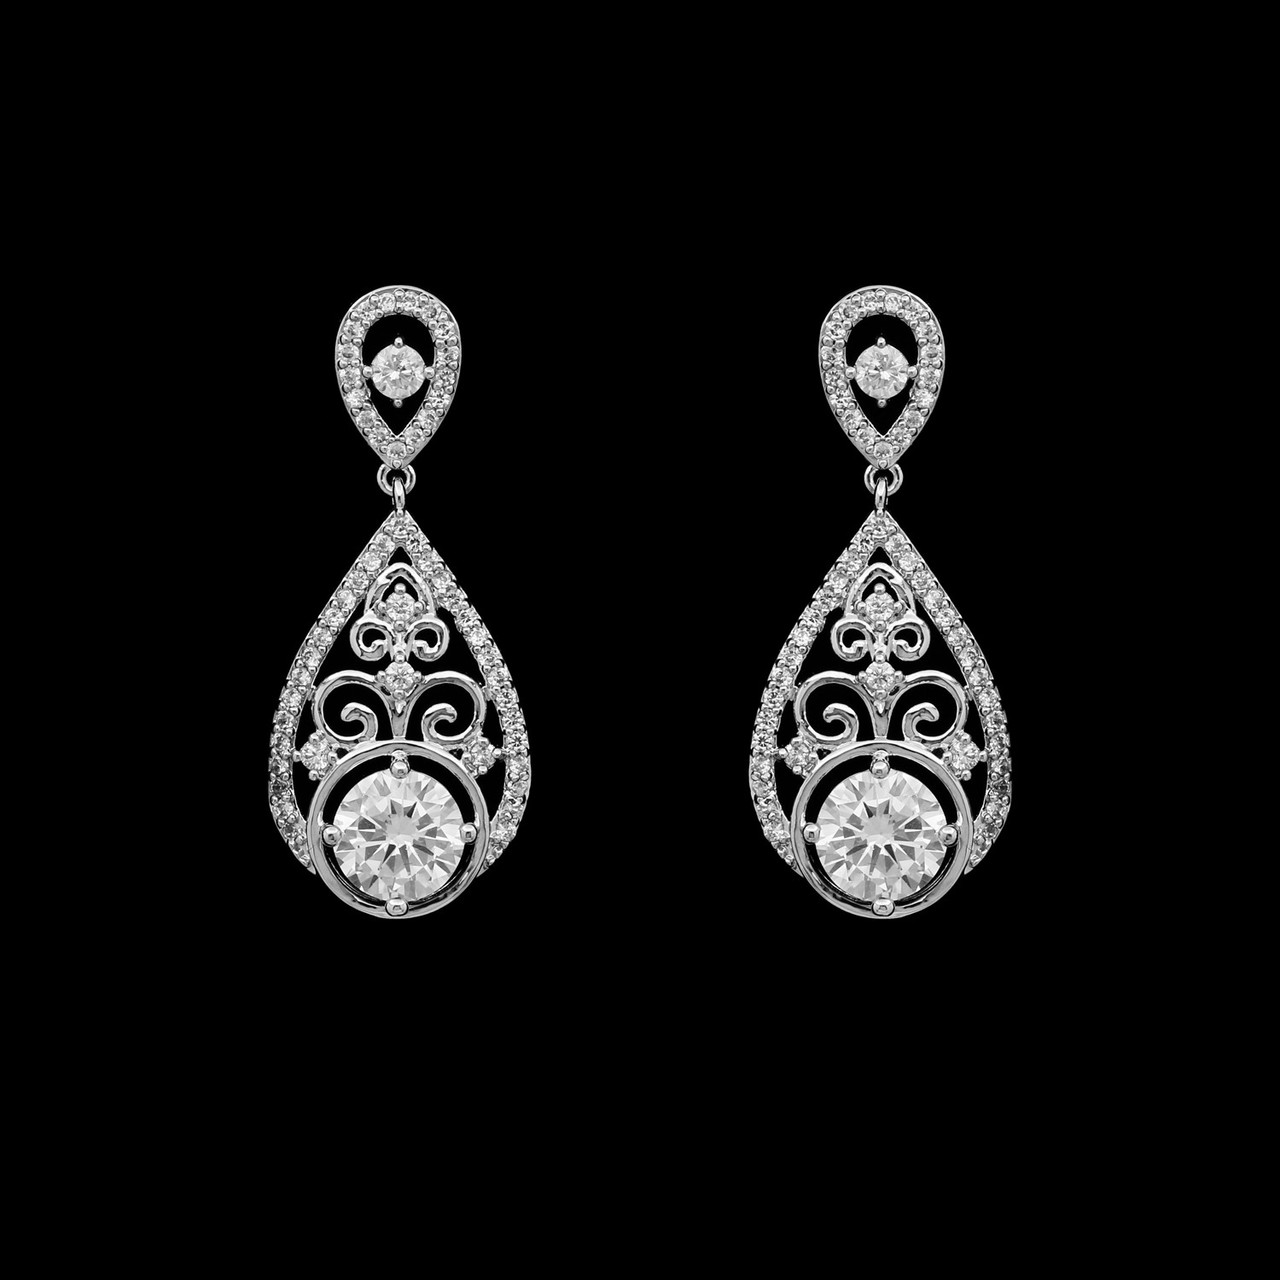 Formal Cubic Zirconia Earrings for Bridesmaids and Brides - #6655